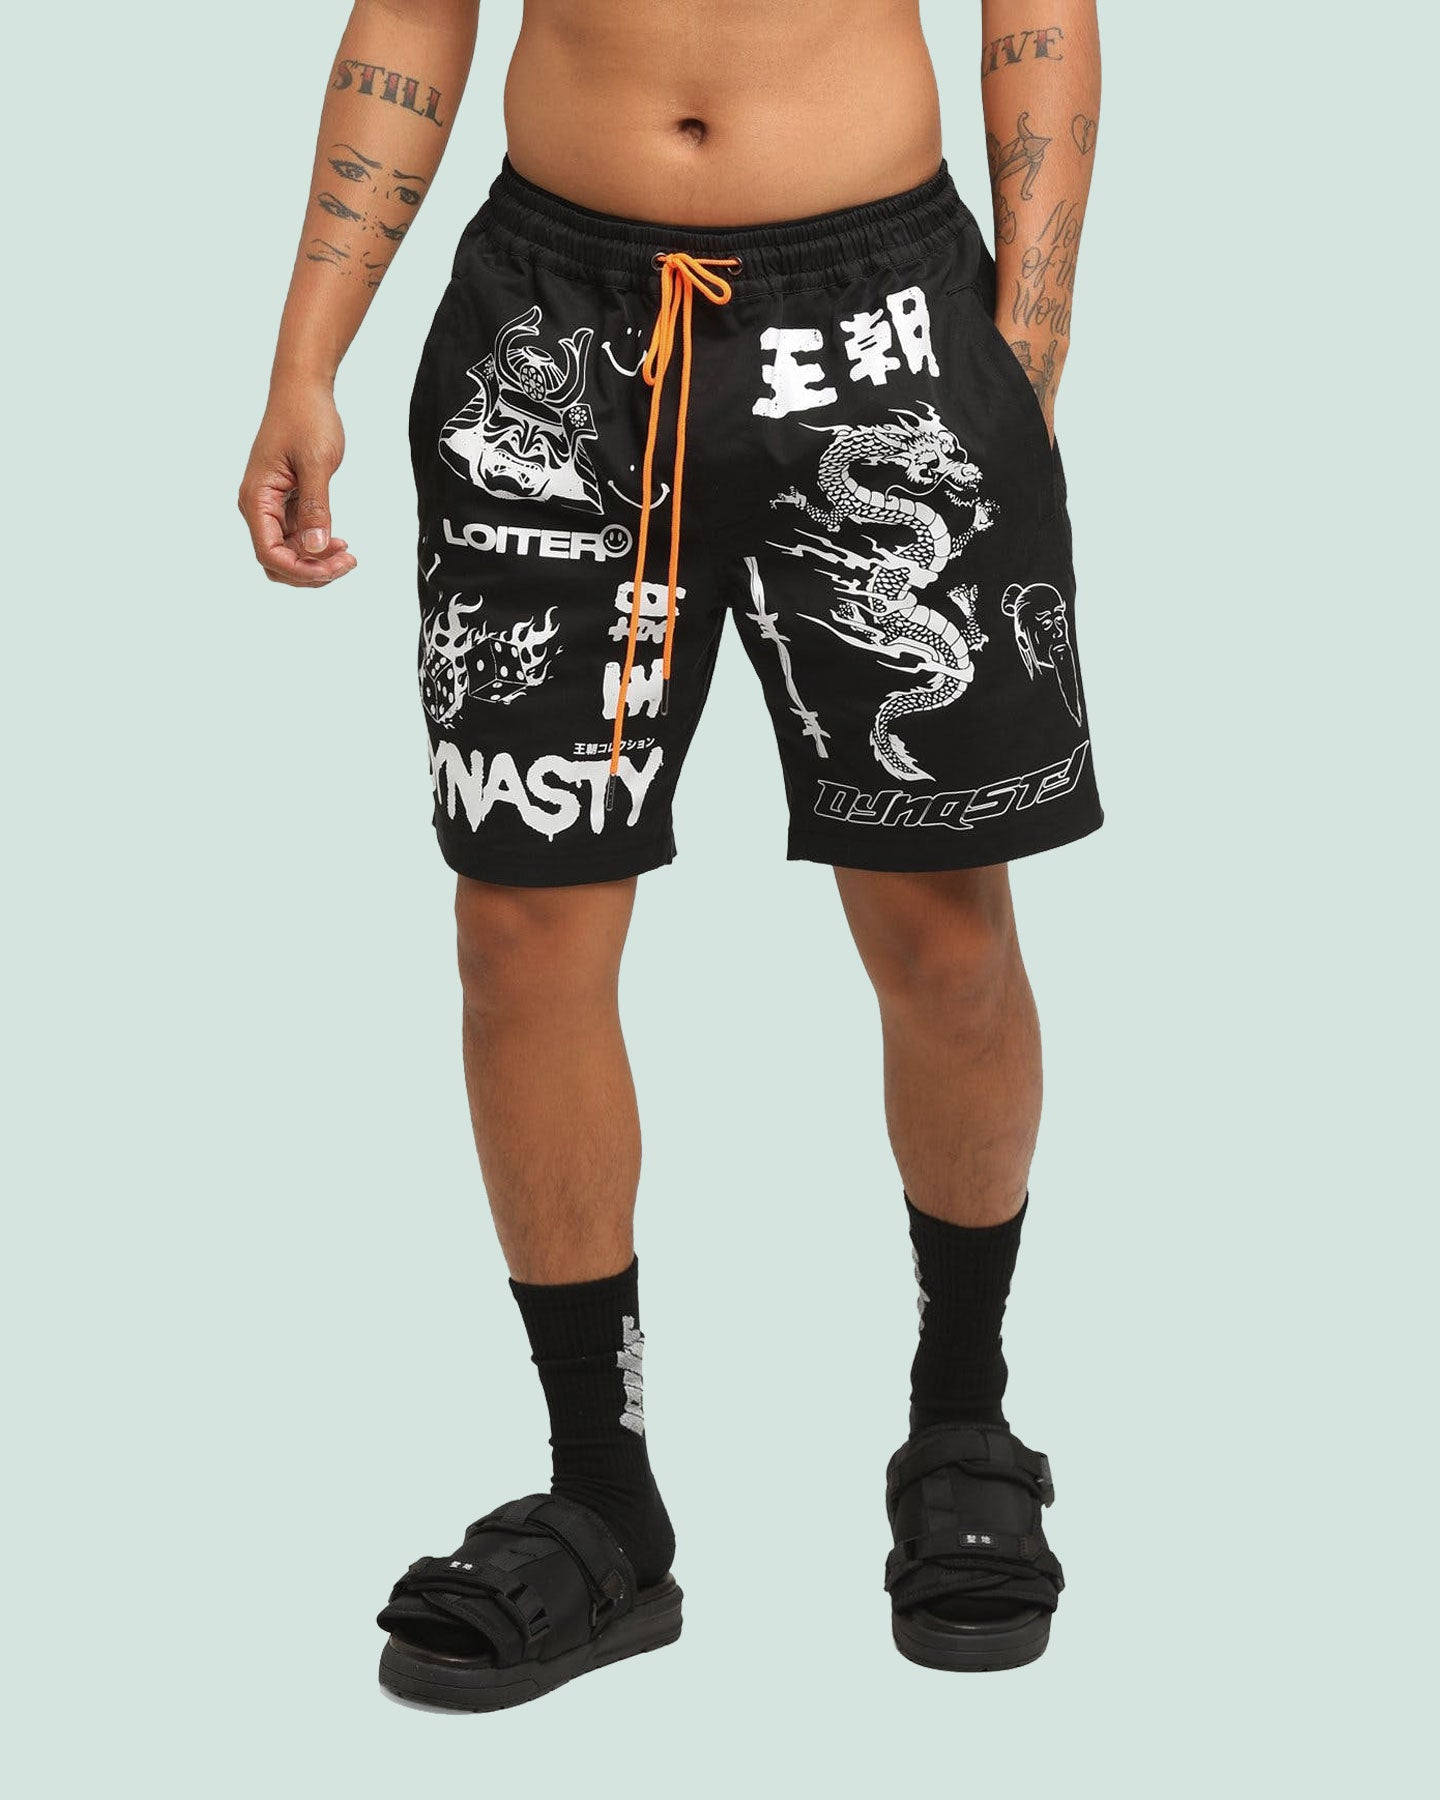 DYNASTY MULTI LOGO SHORT - Black